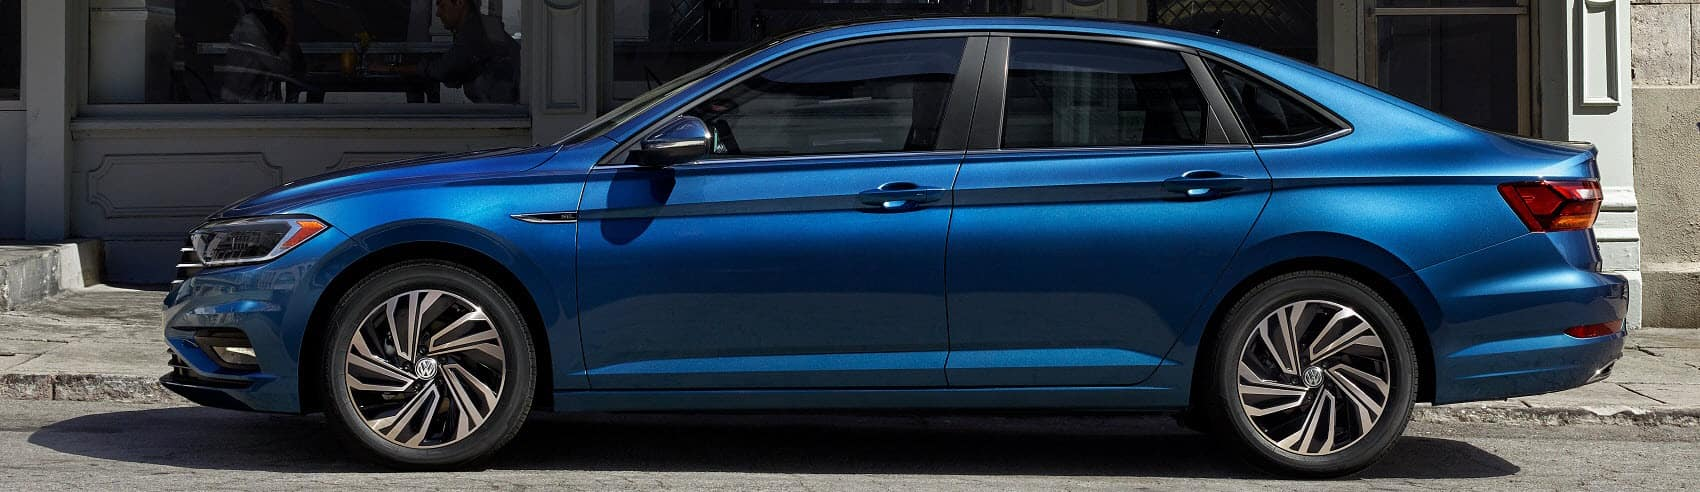 2019 Volkswagen Jetta Side View